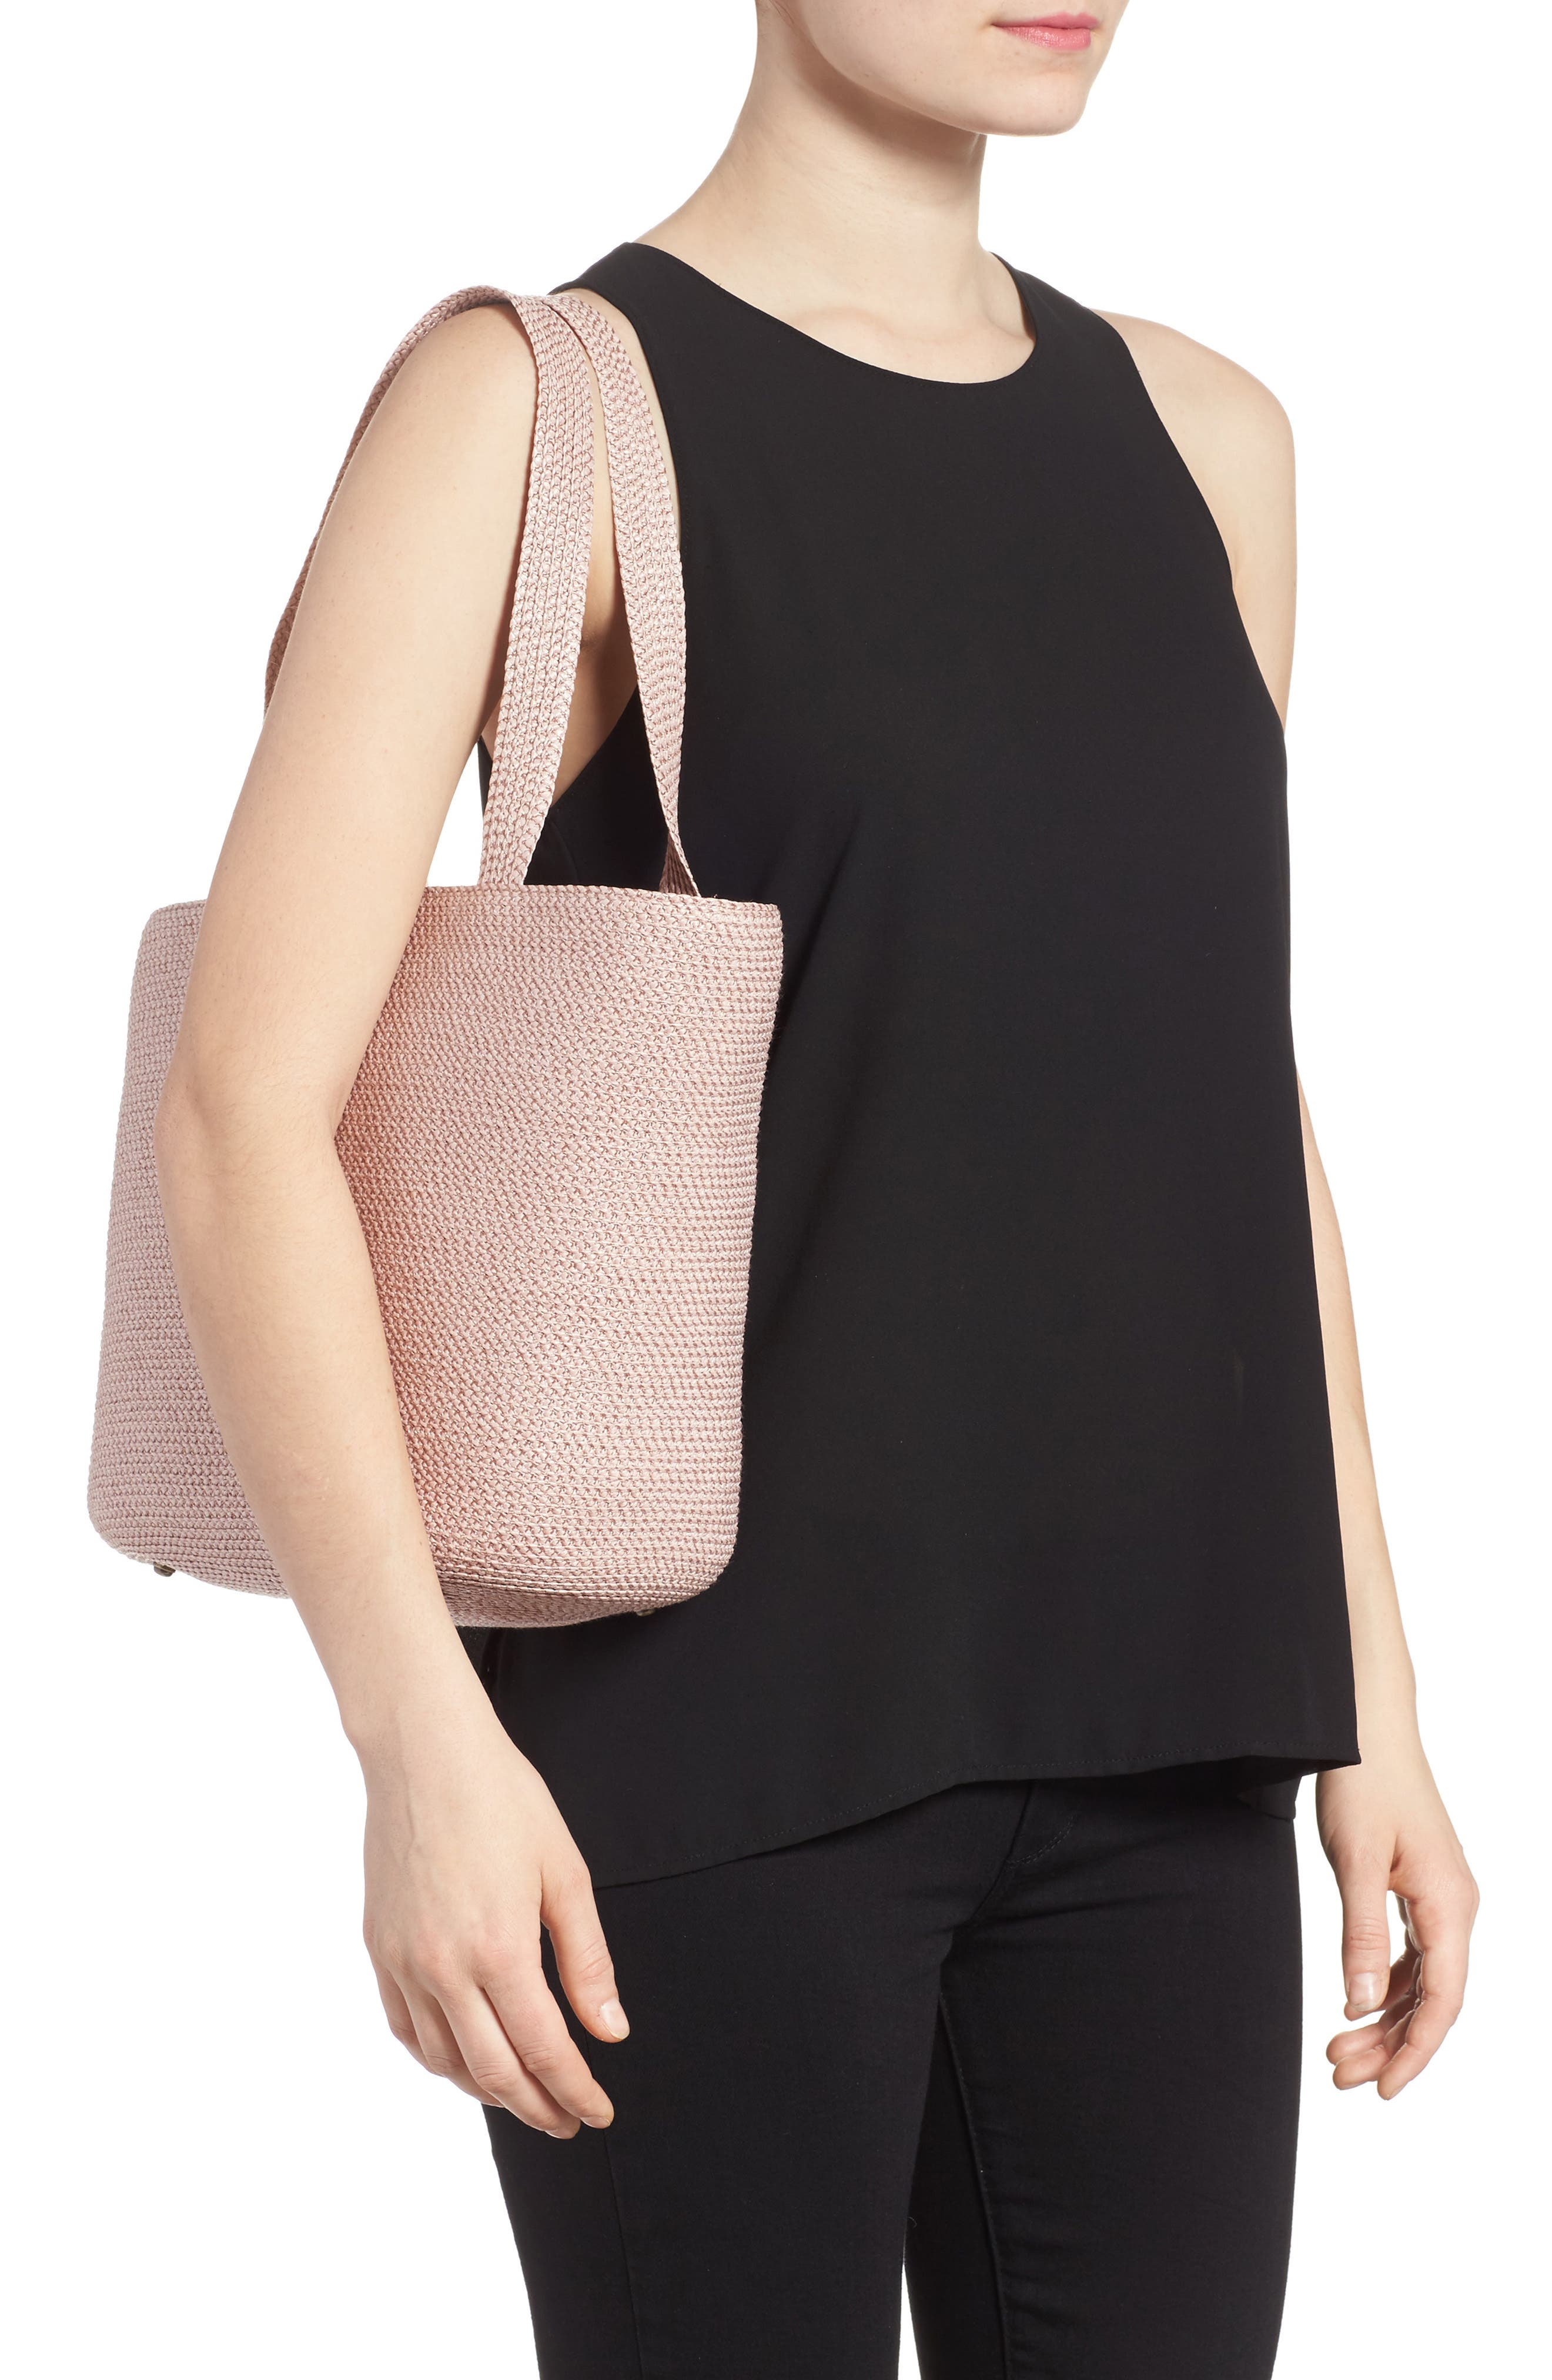 Squishee<sup>®</sup> Tote,                             Alternate thumbnail 2, color,                             BLUSH